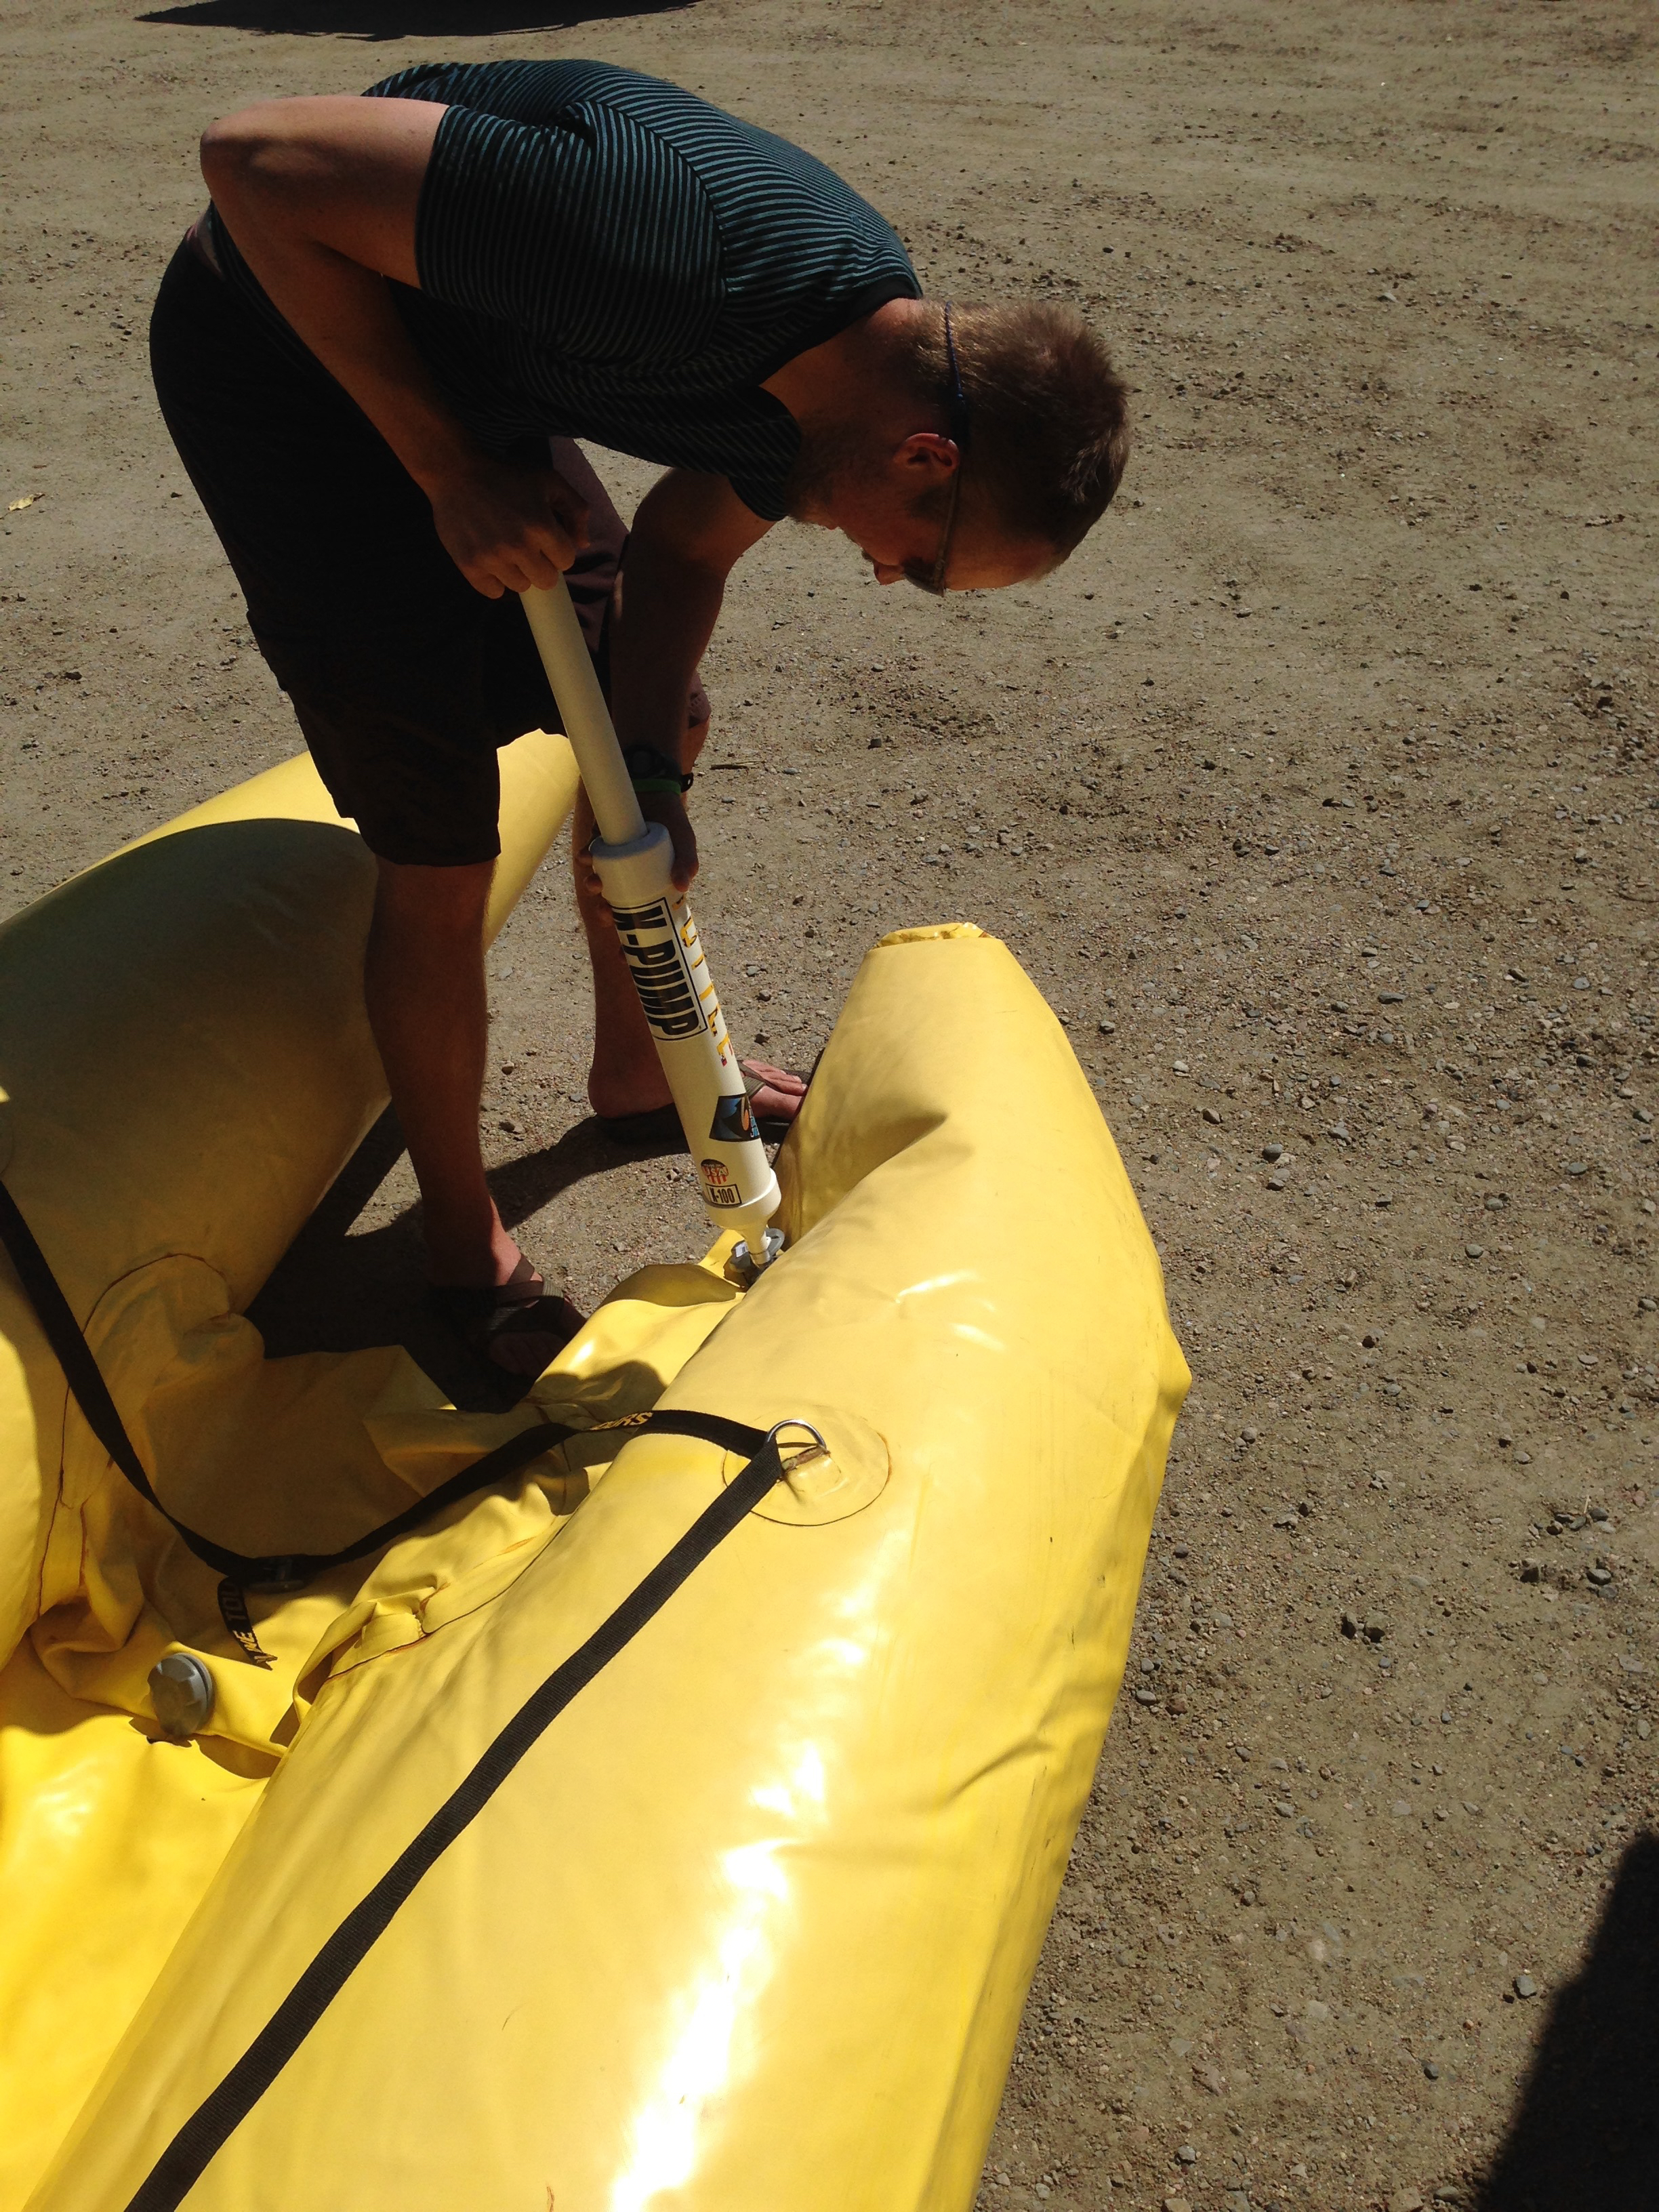 Pumping up the shredder with our hand K-pump. Thankfully, it's a small boat.